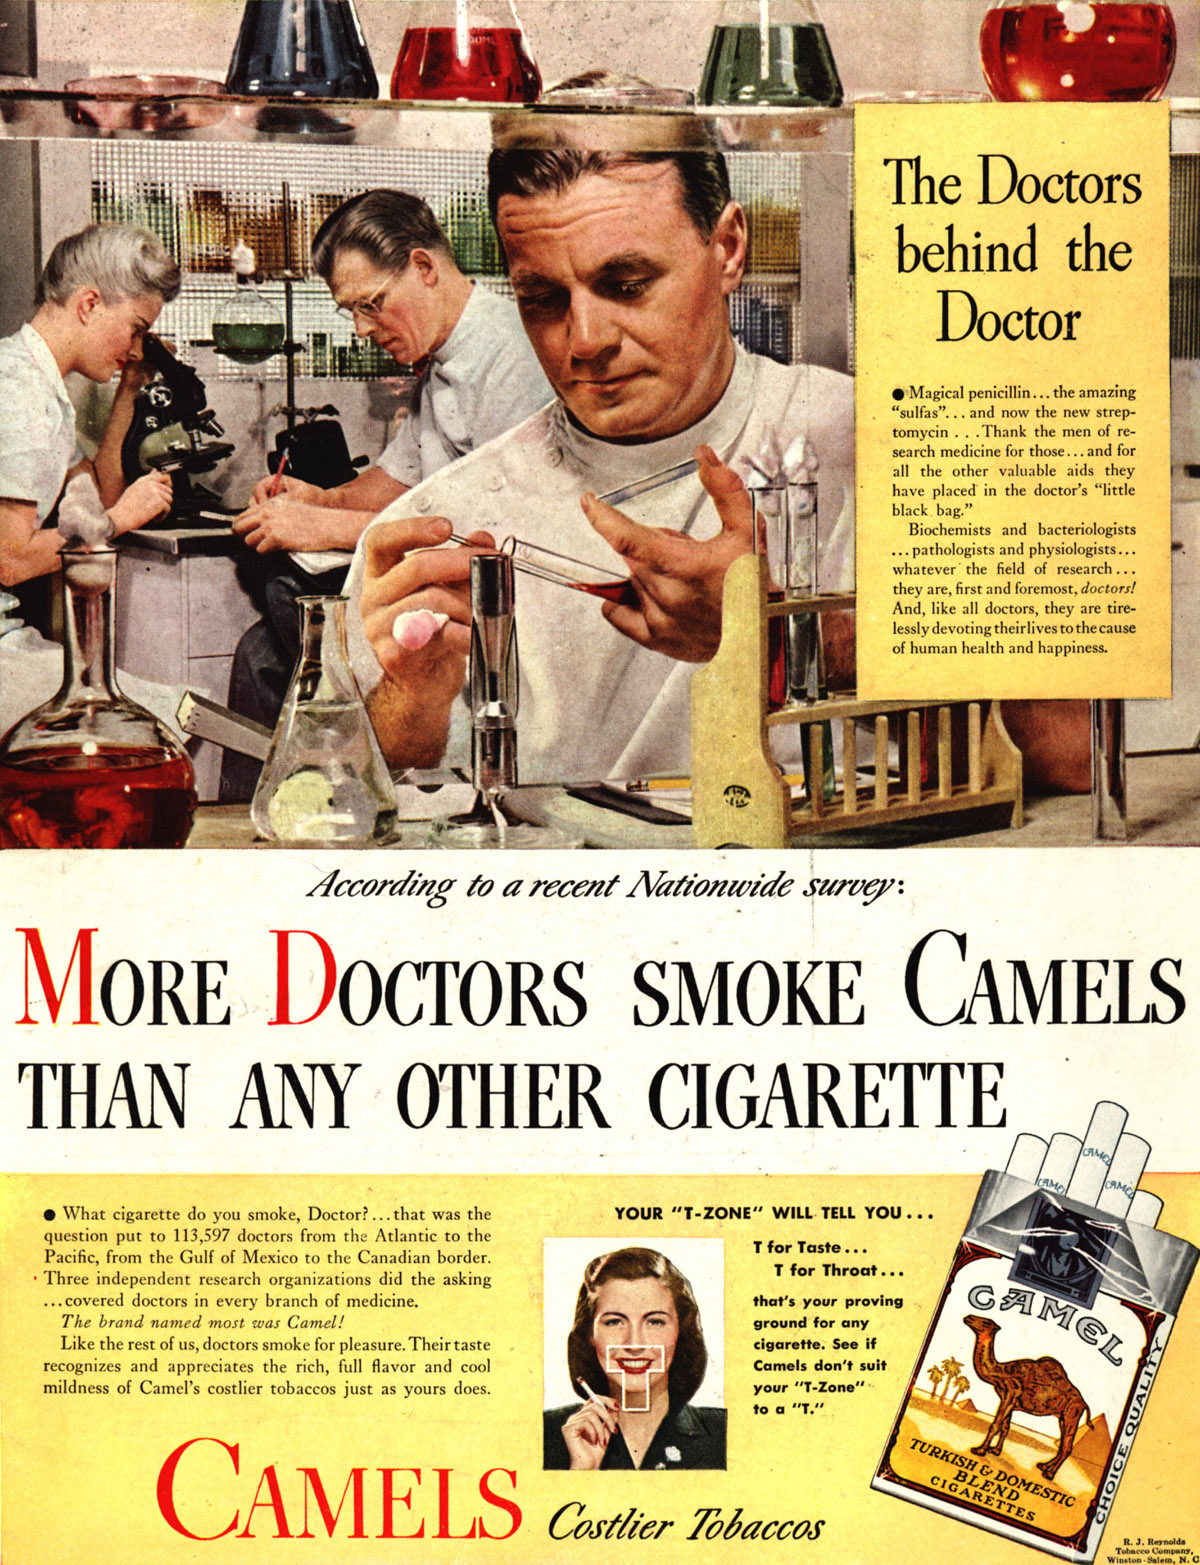 Famous camel cigarette smokers poisons found in cigarettes